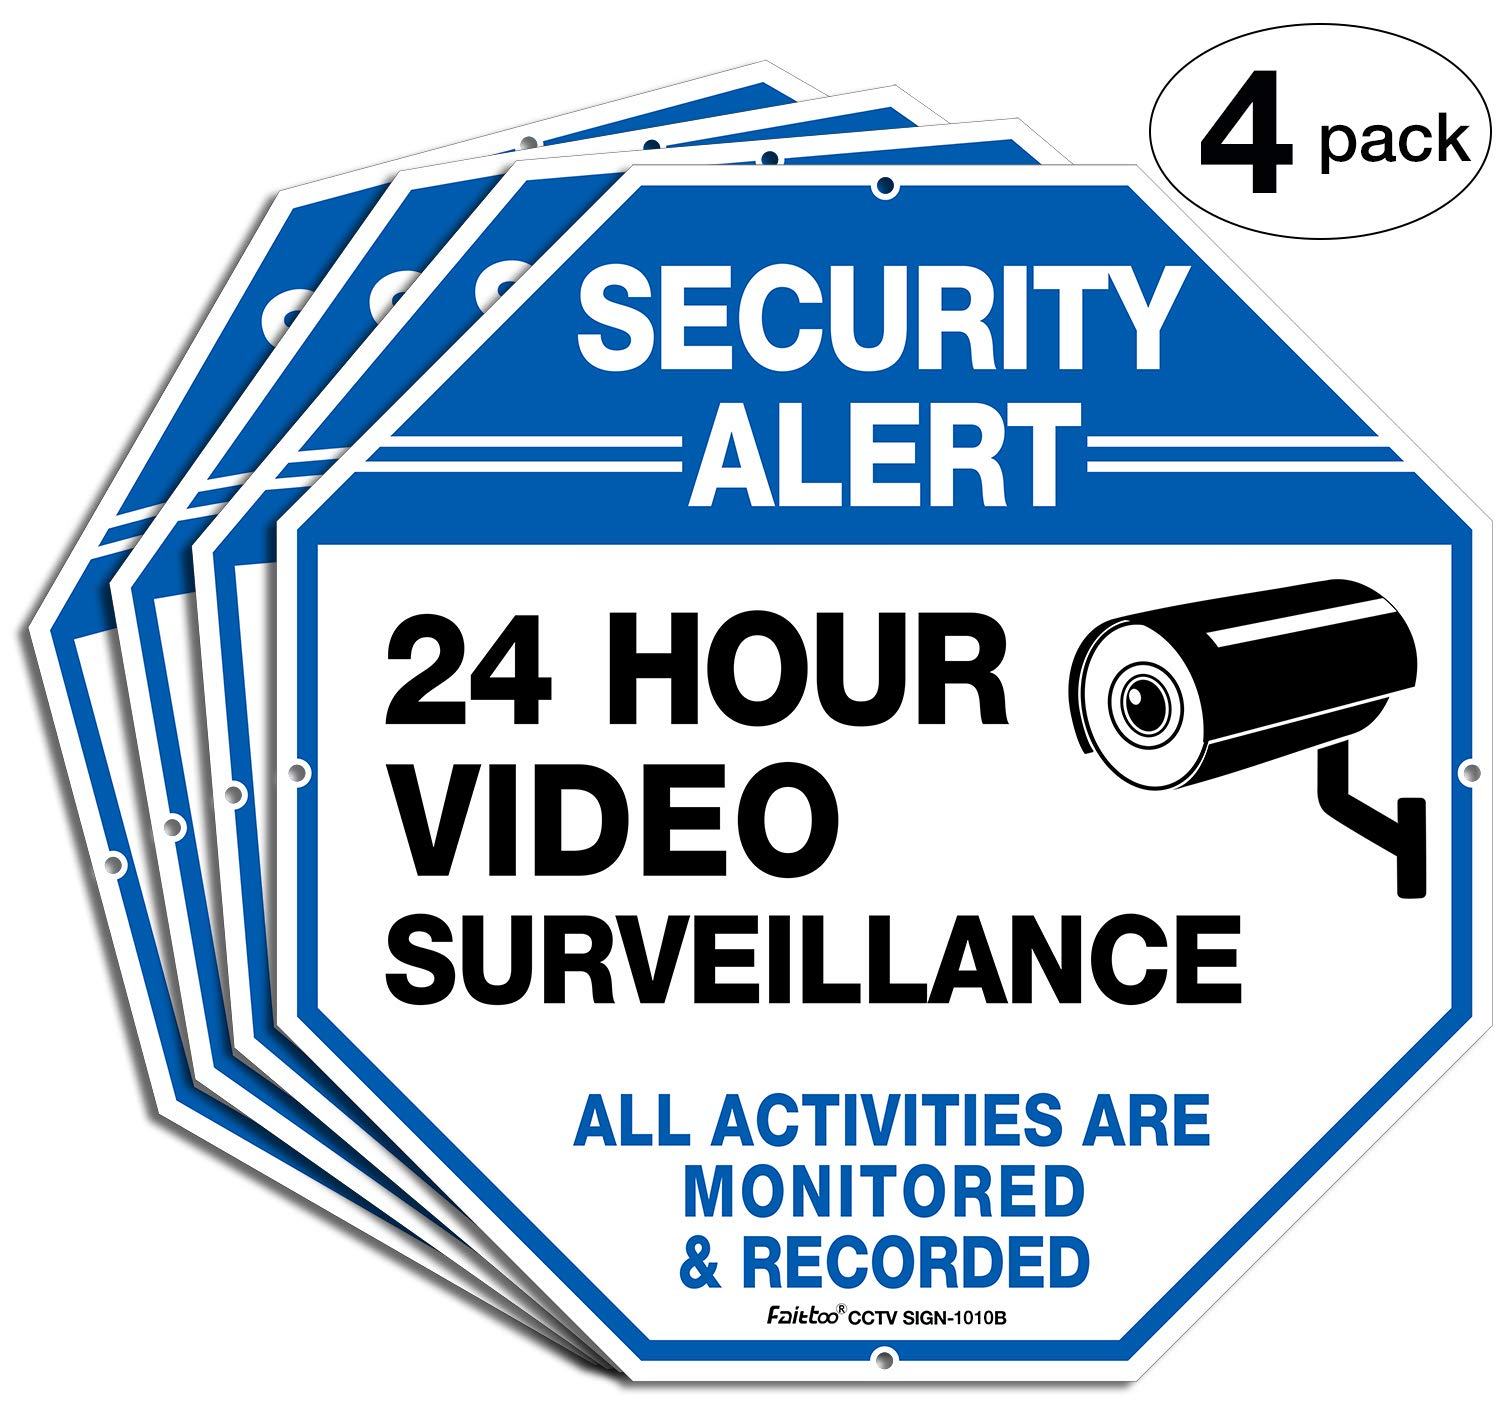 (4 Pack)''Security Alert - 24 Hour Video Surveillance, All Activities Monitored'' Signs,10 x 10 .040 Aluminum Reflective Warning Sign for Home Business CCTV Security Camera, Indoor or Outdoor Use,Blue